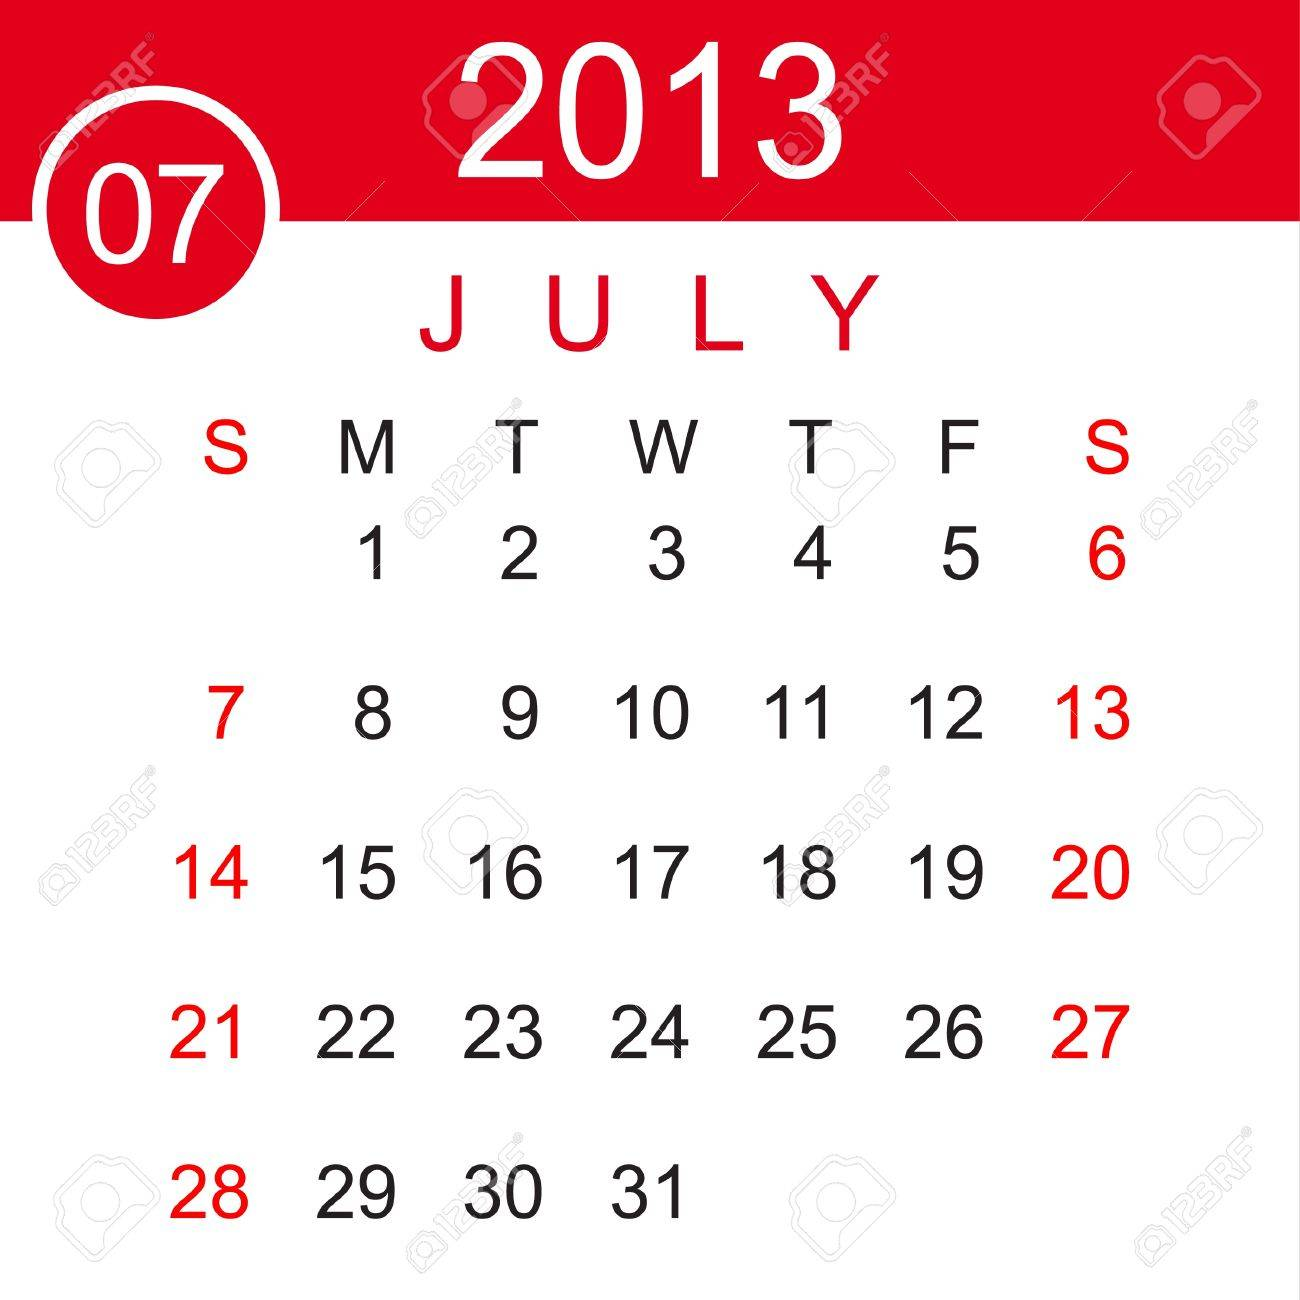 July 2013 Calendar Stock Vector - 15883488